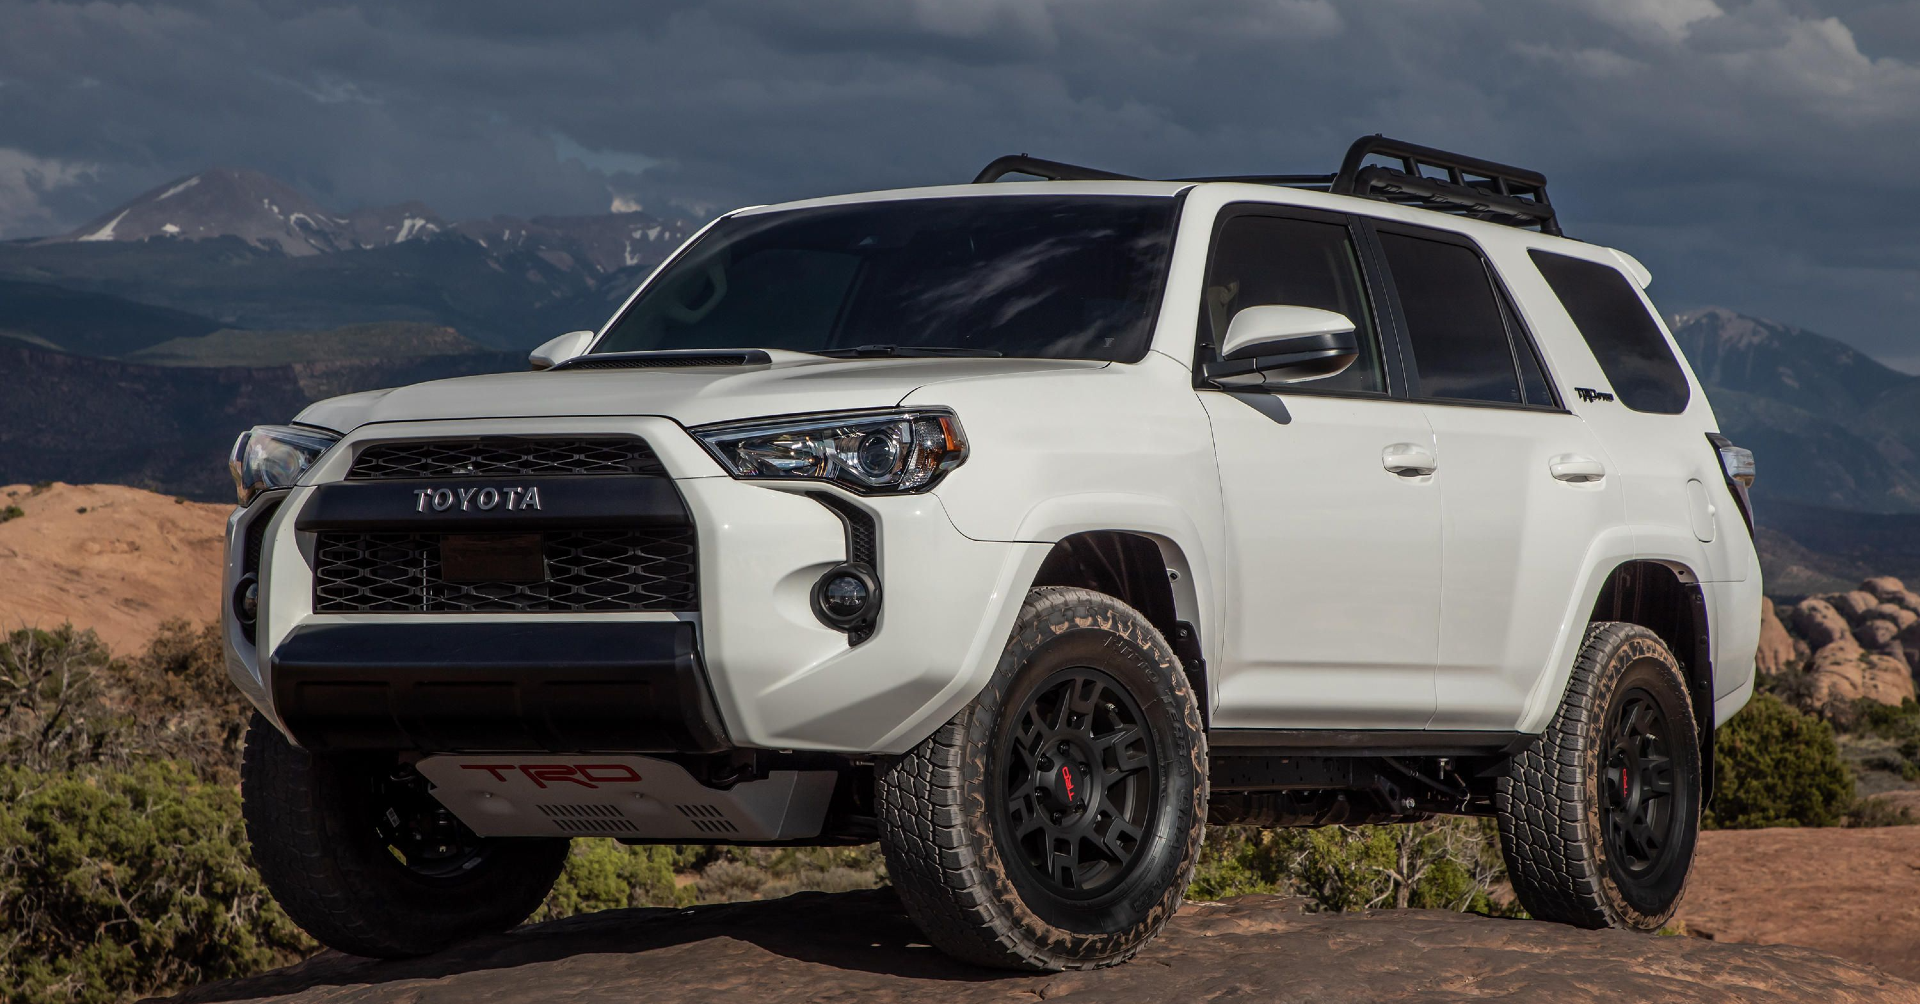 Toyota 4Runner - Advanced Tech in an Older Toyota